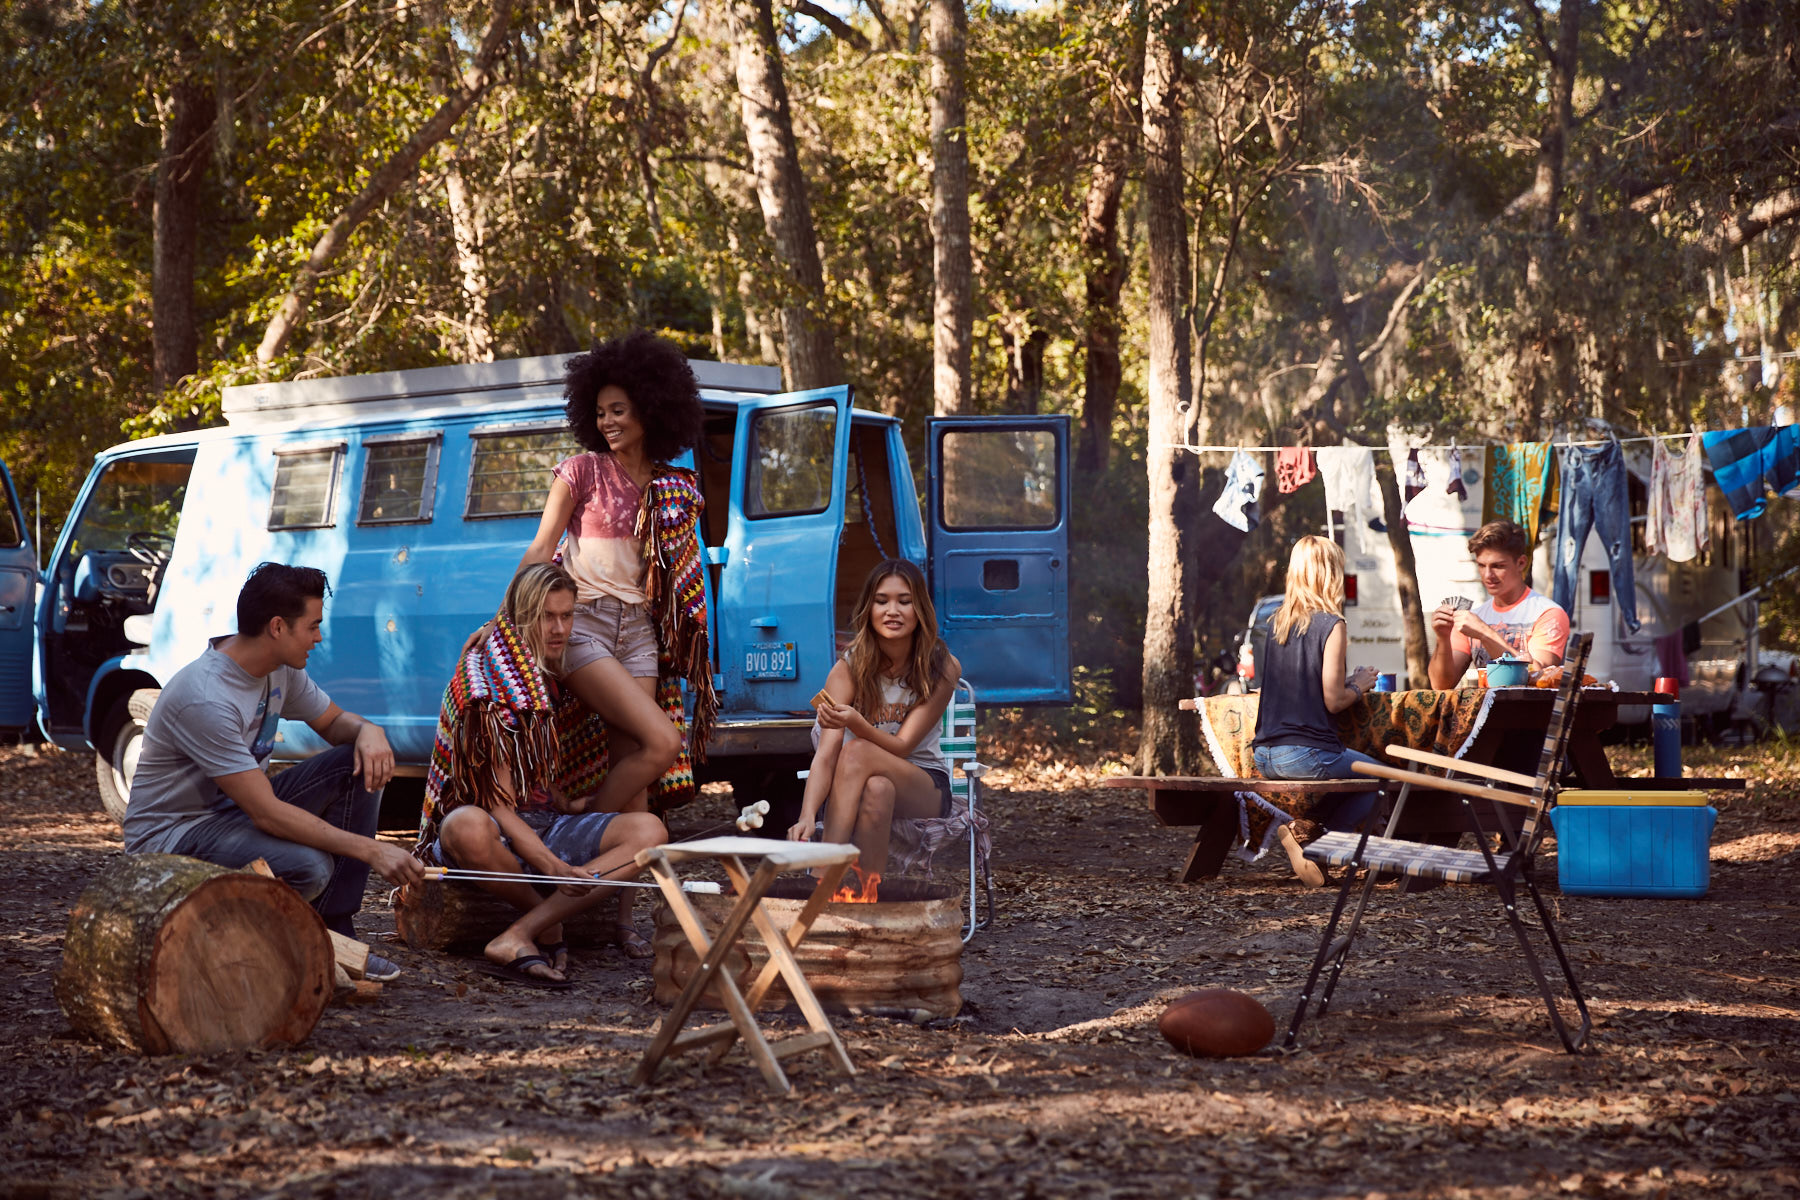 Group of six friends, wearing Buckle clothing, hanging out around the fire and playing cards, while on a camping trip.